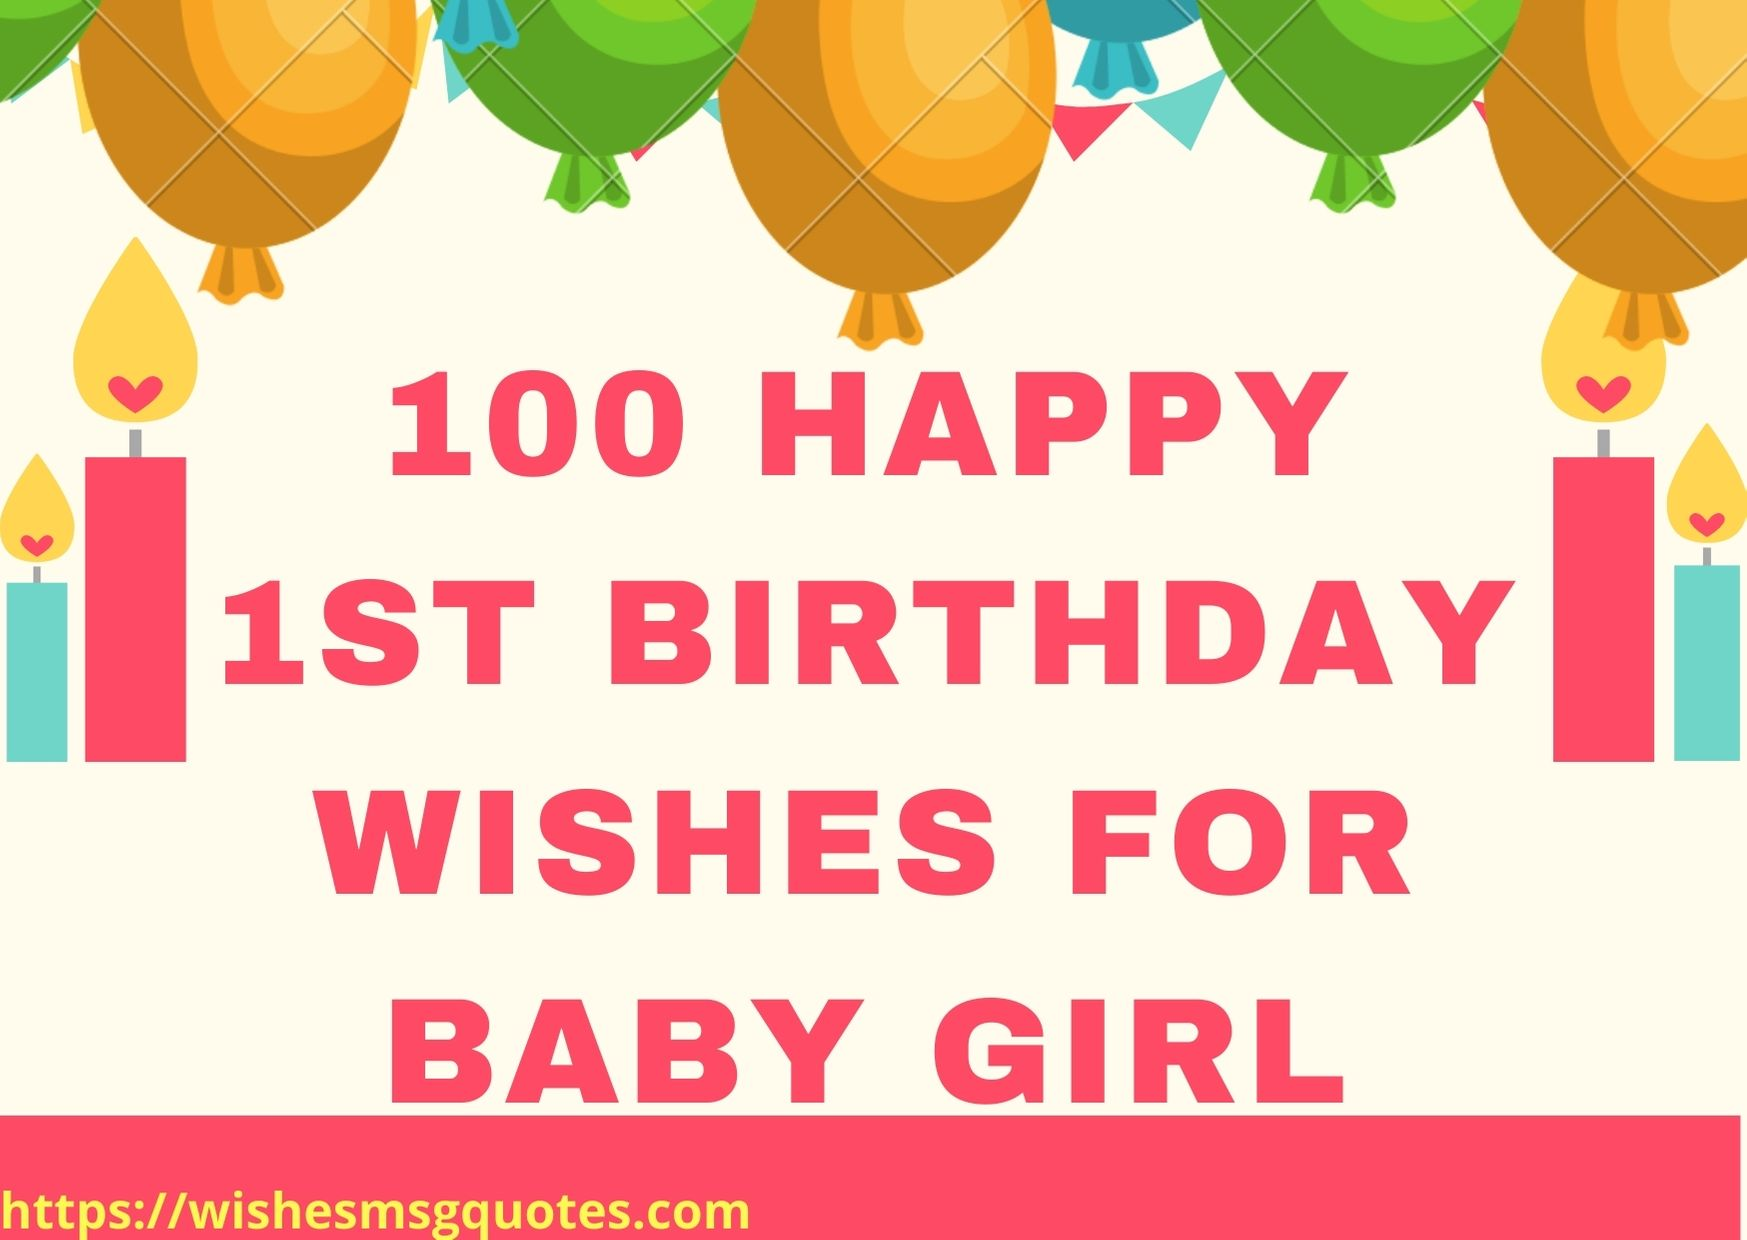 100 Happy 1st Birthday Wishes For Baby Girl